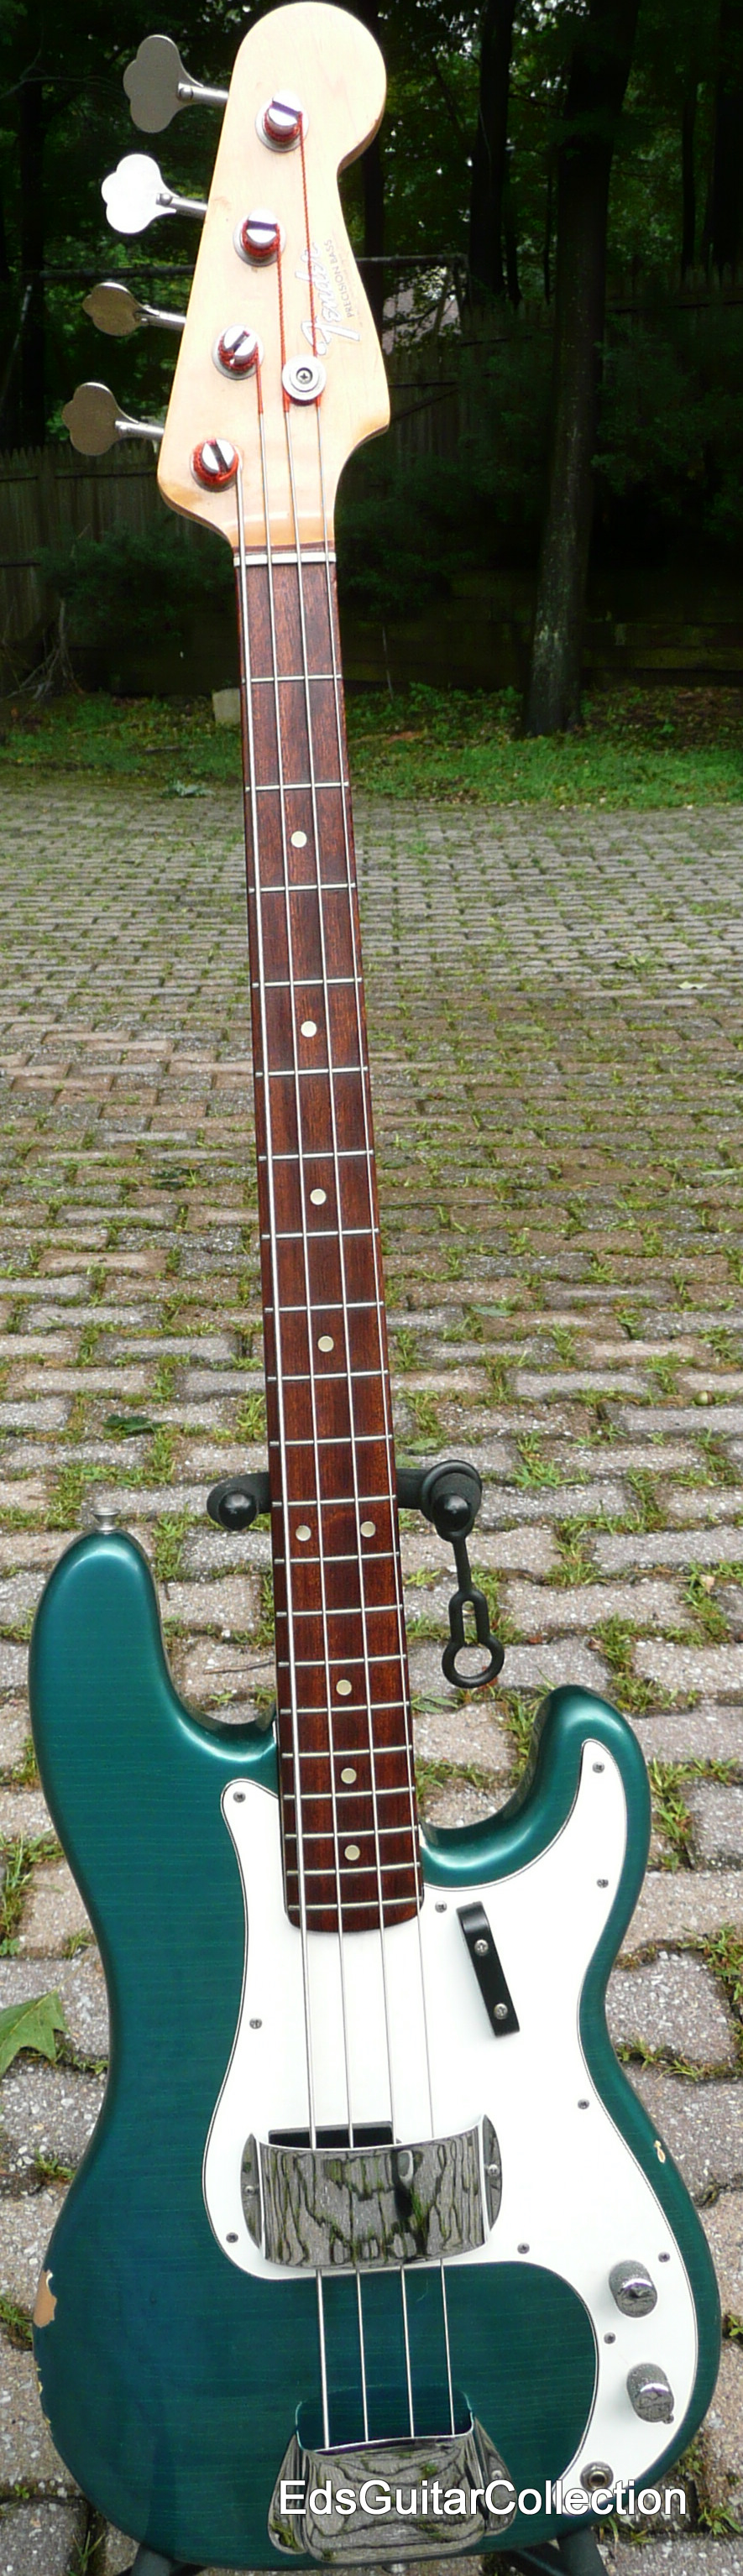 1965 Fender Precision Bass Lake Placid Blue